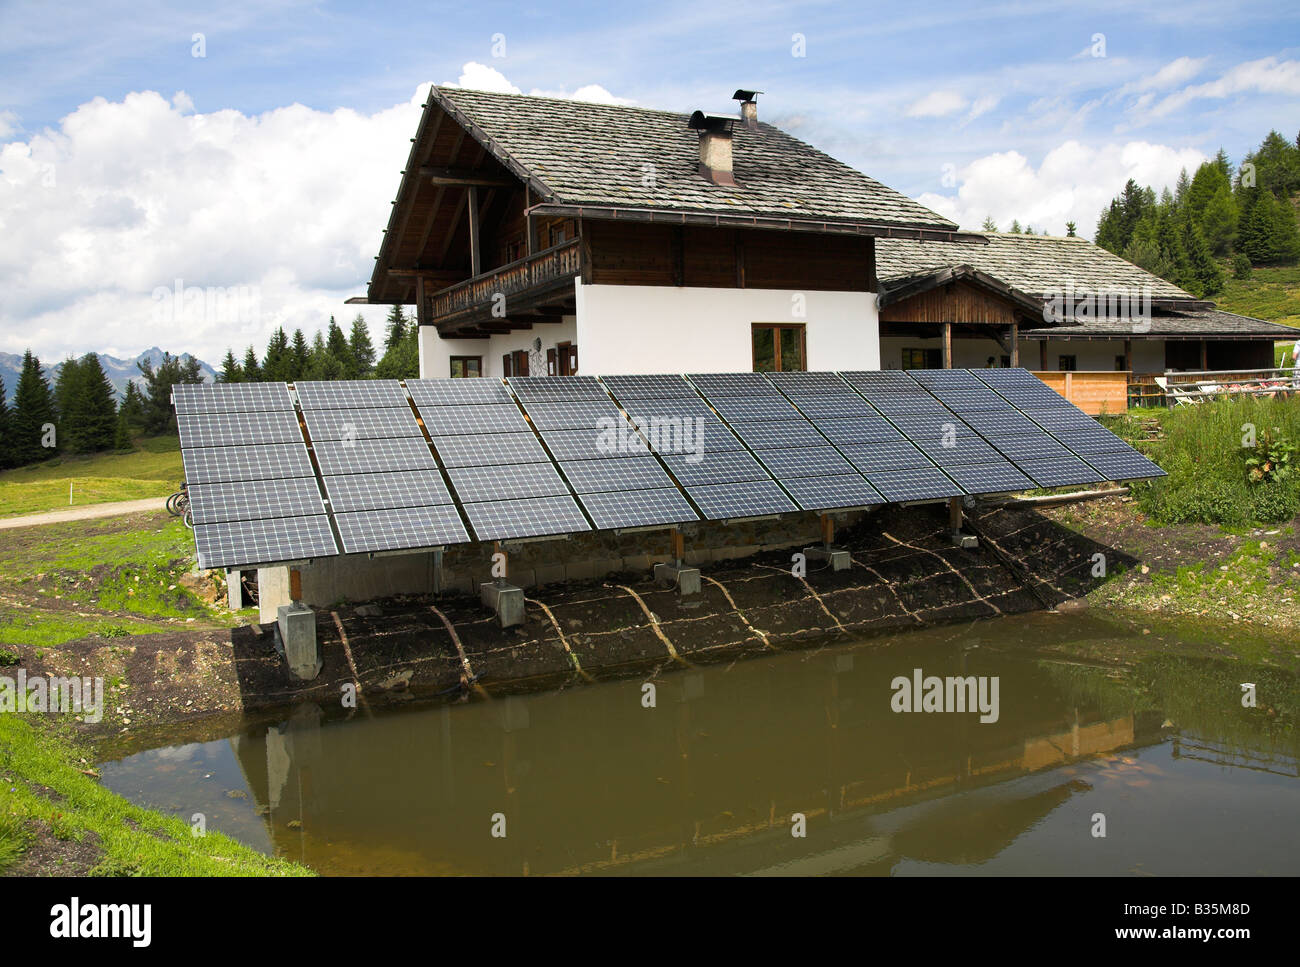 Solar panels outside a house - Stock Image